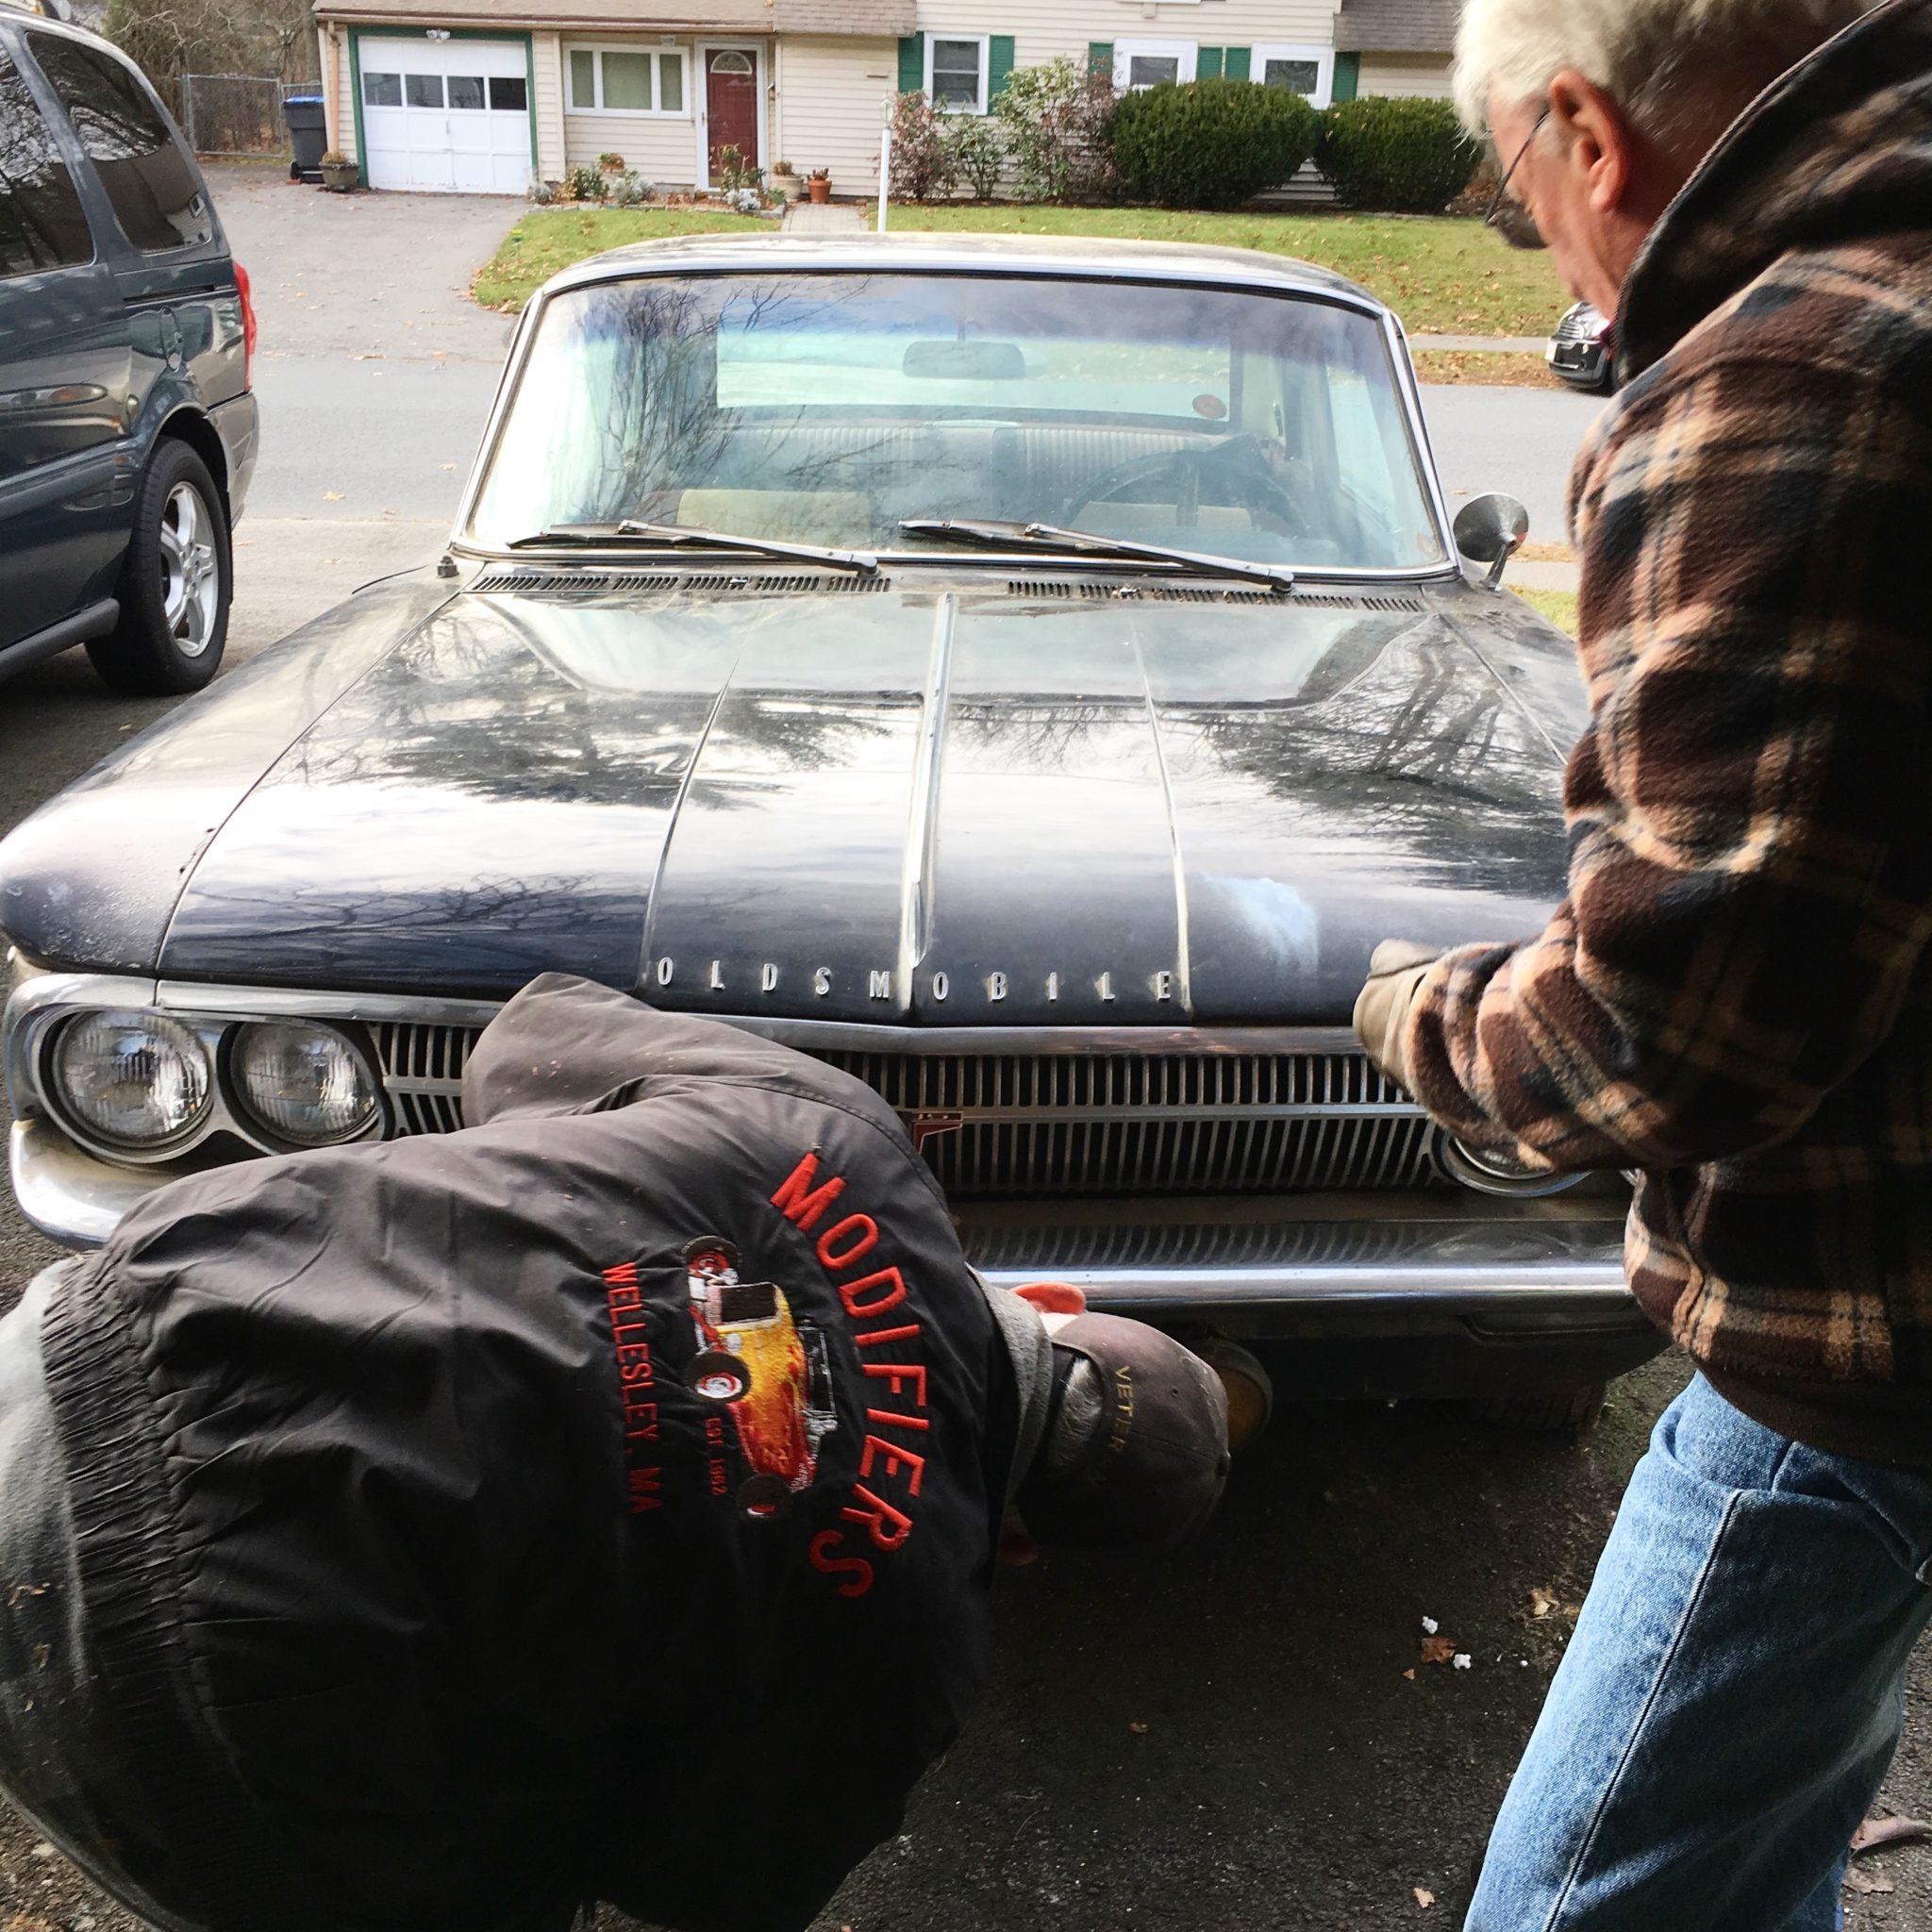 Estate Sale Cars Near Me Beautiful Trend Alert top Ten Things to at An Estate Sale Hunt